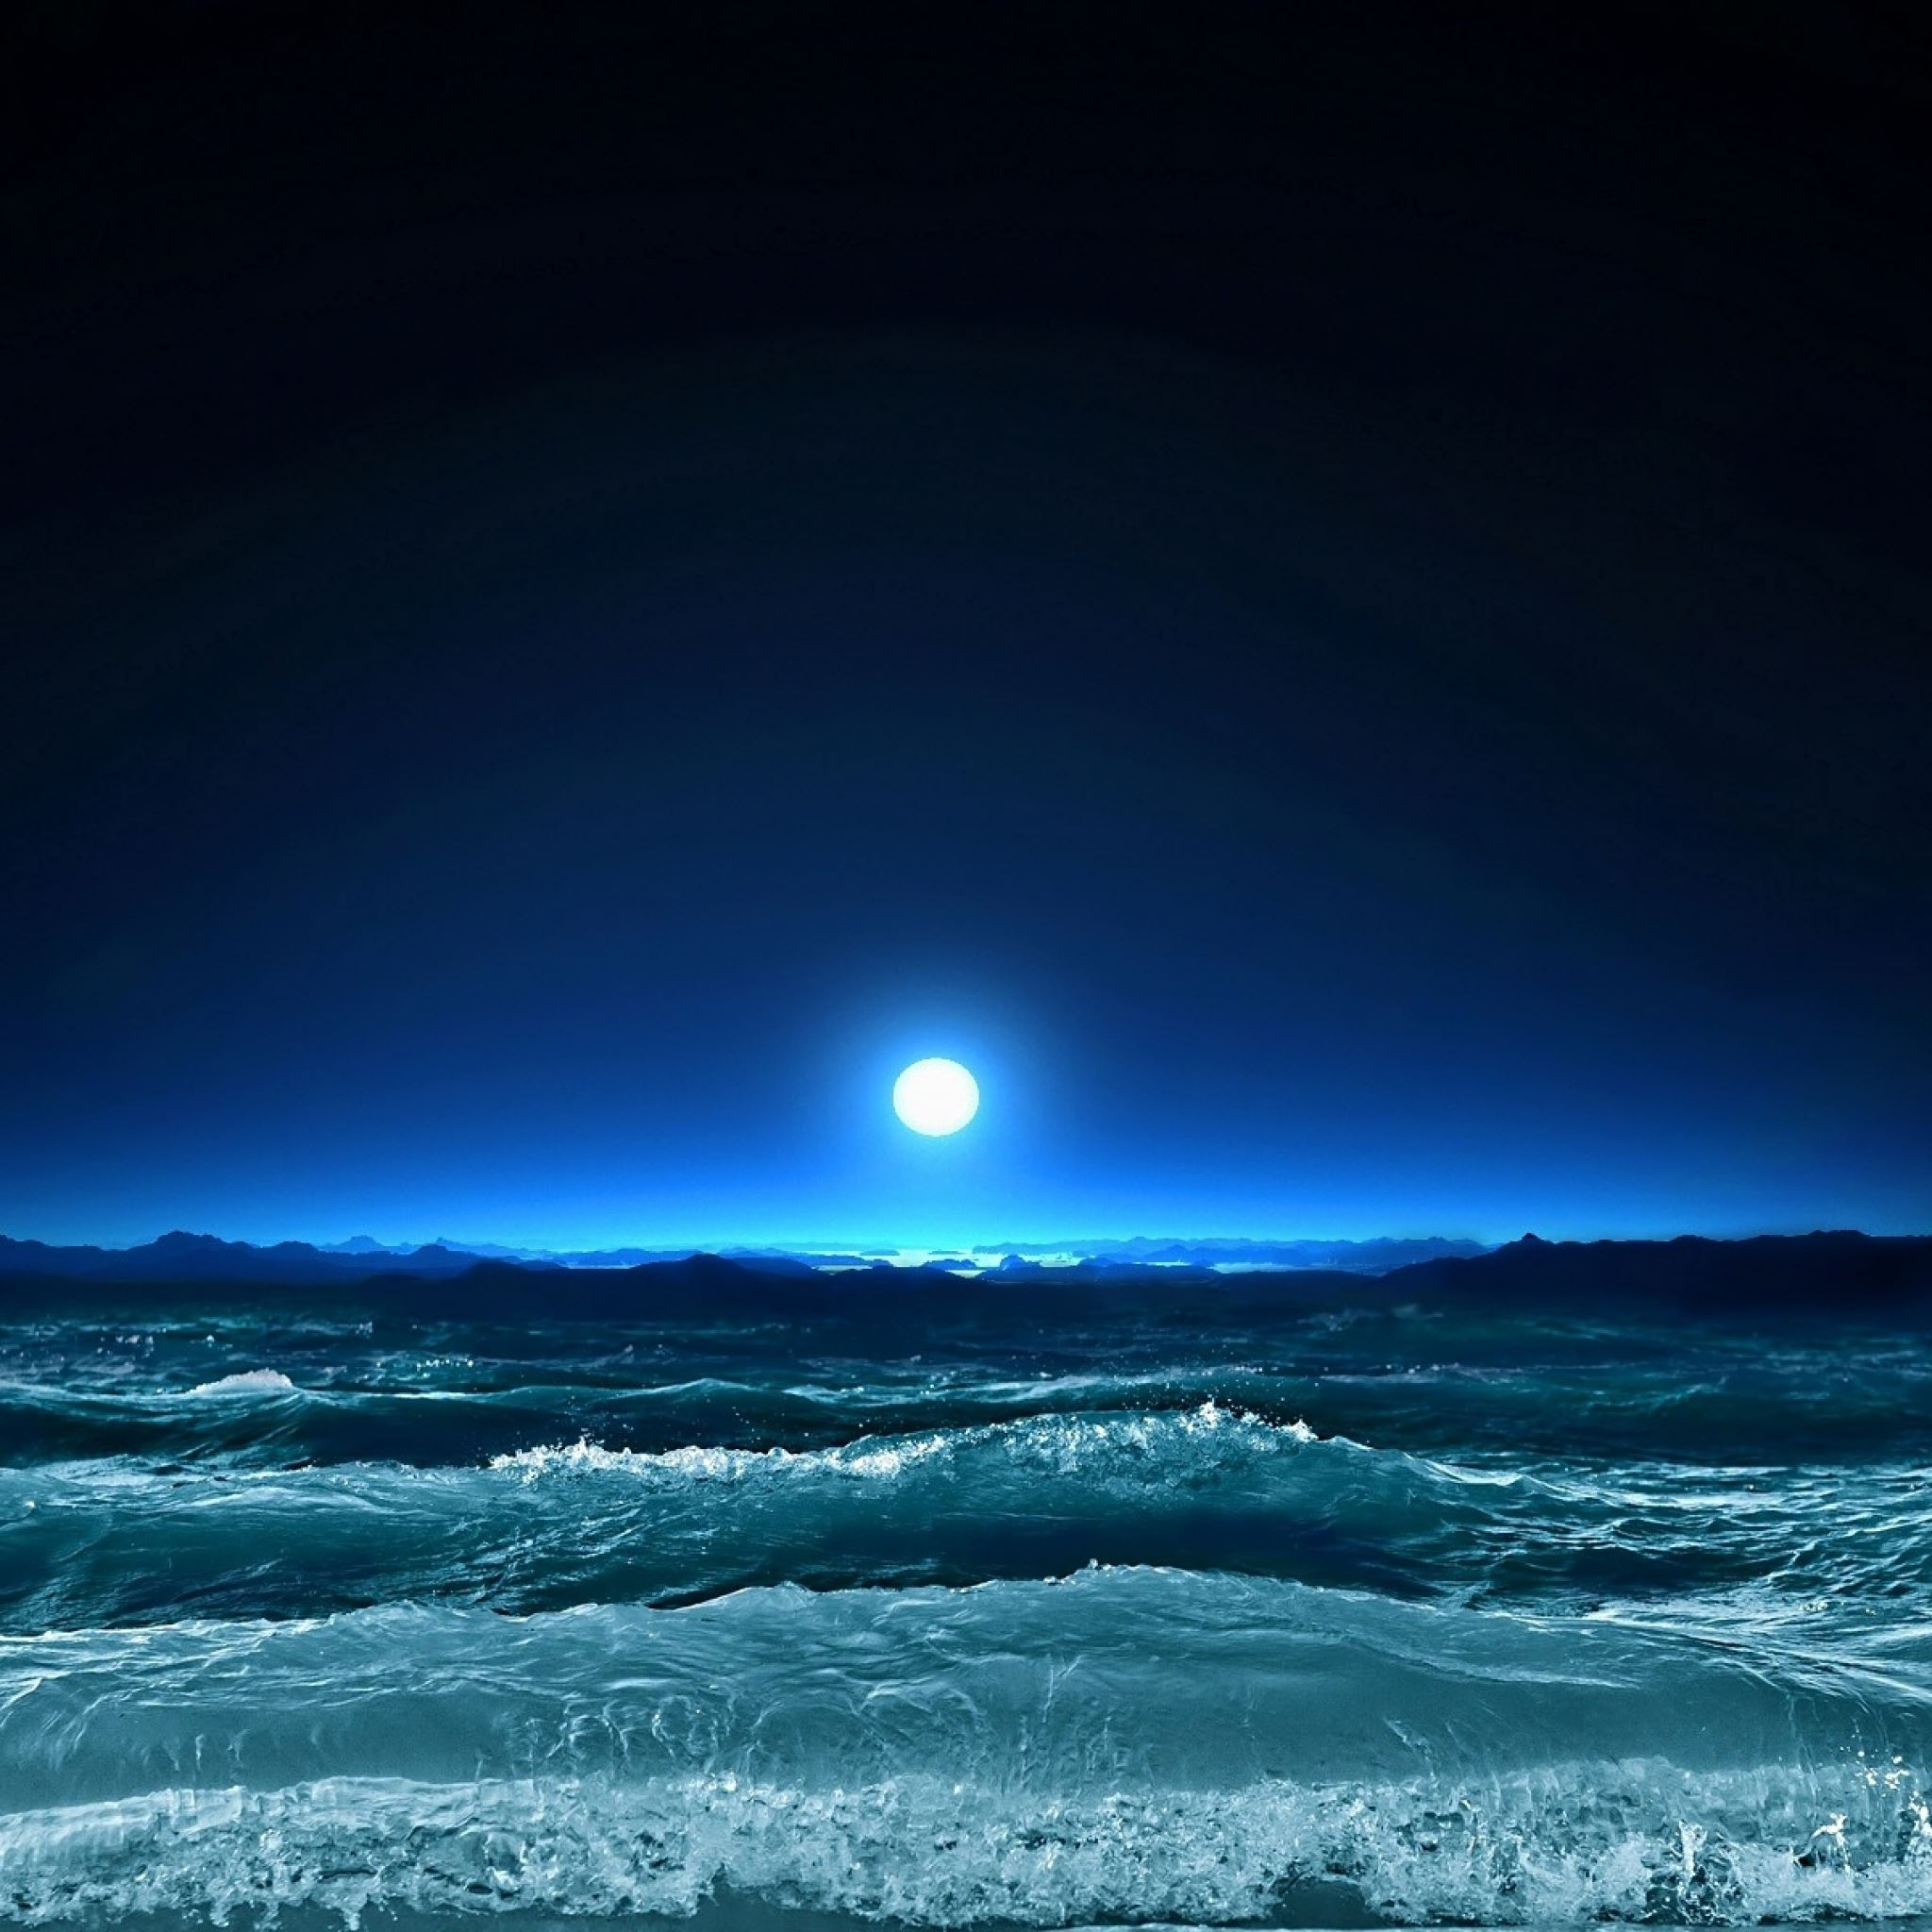 Moon light sea night waves art iPad Air wallpaper